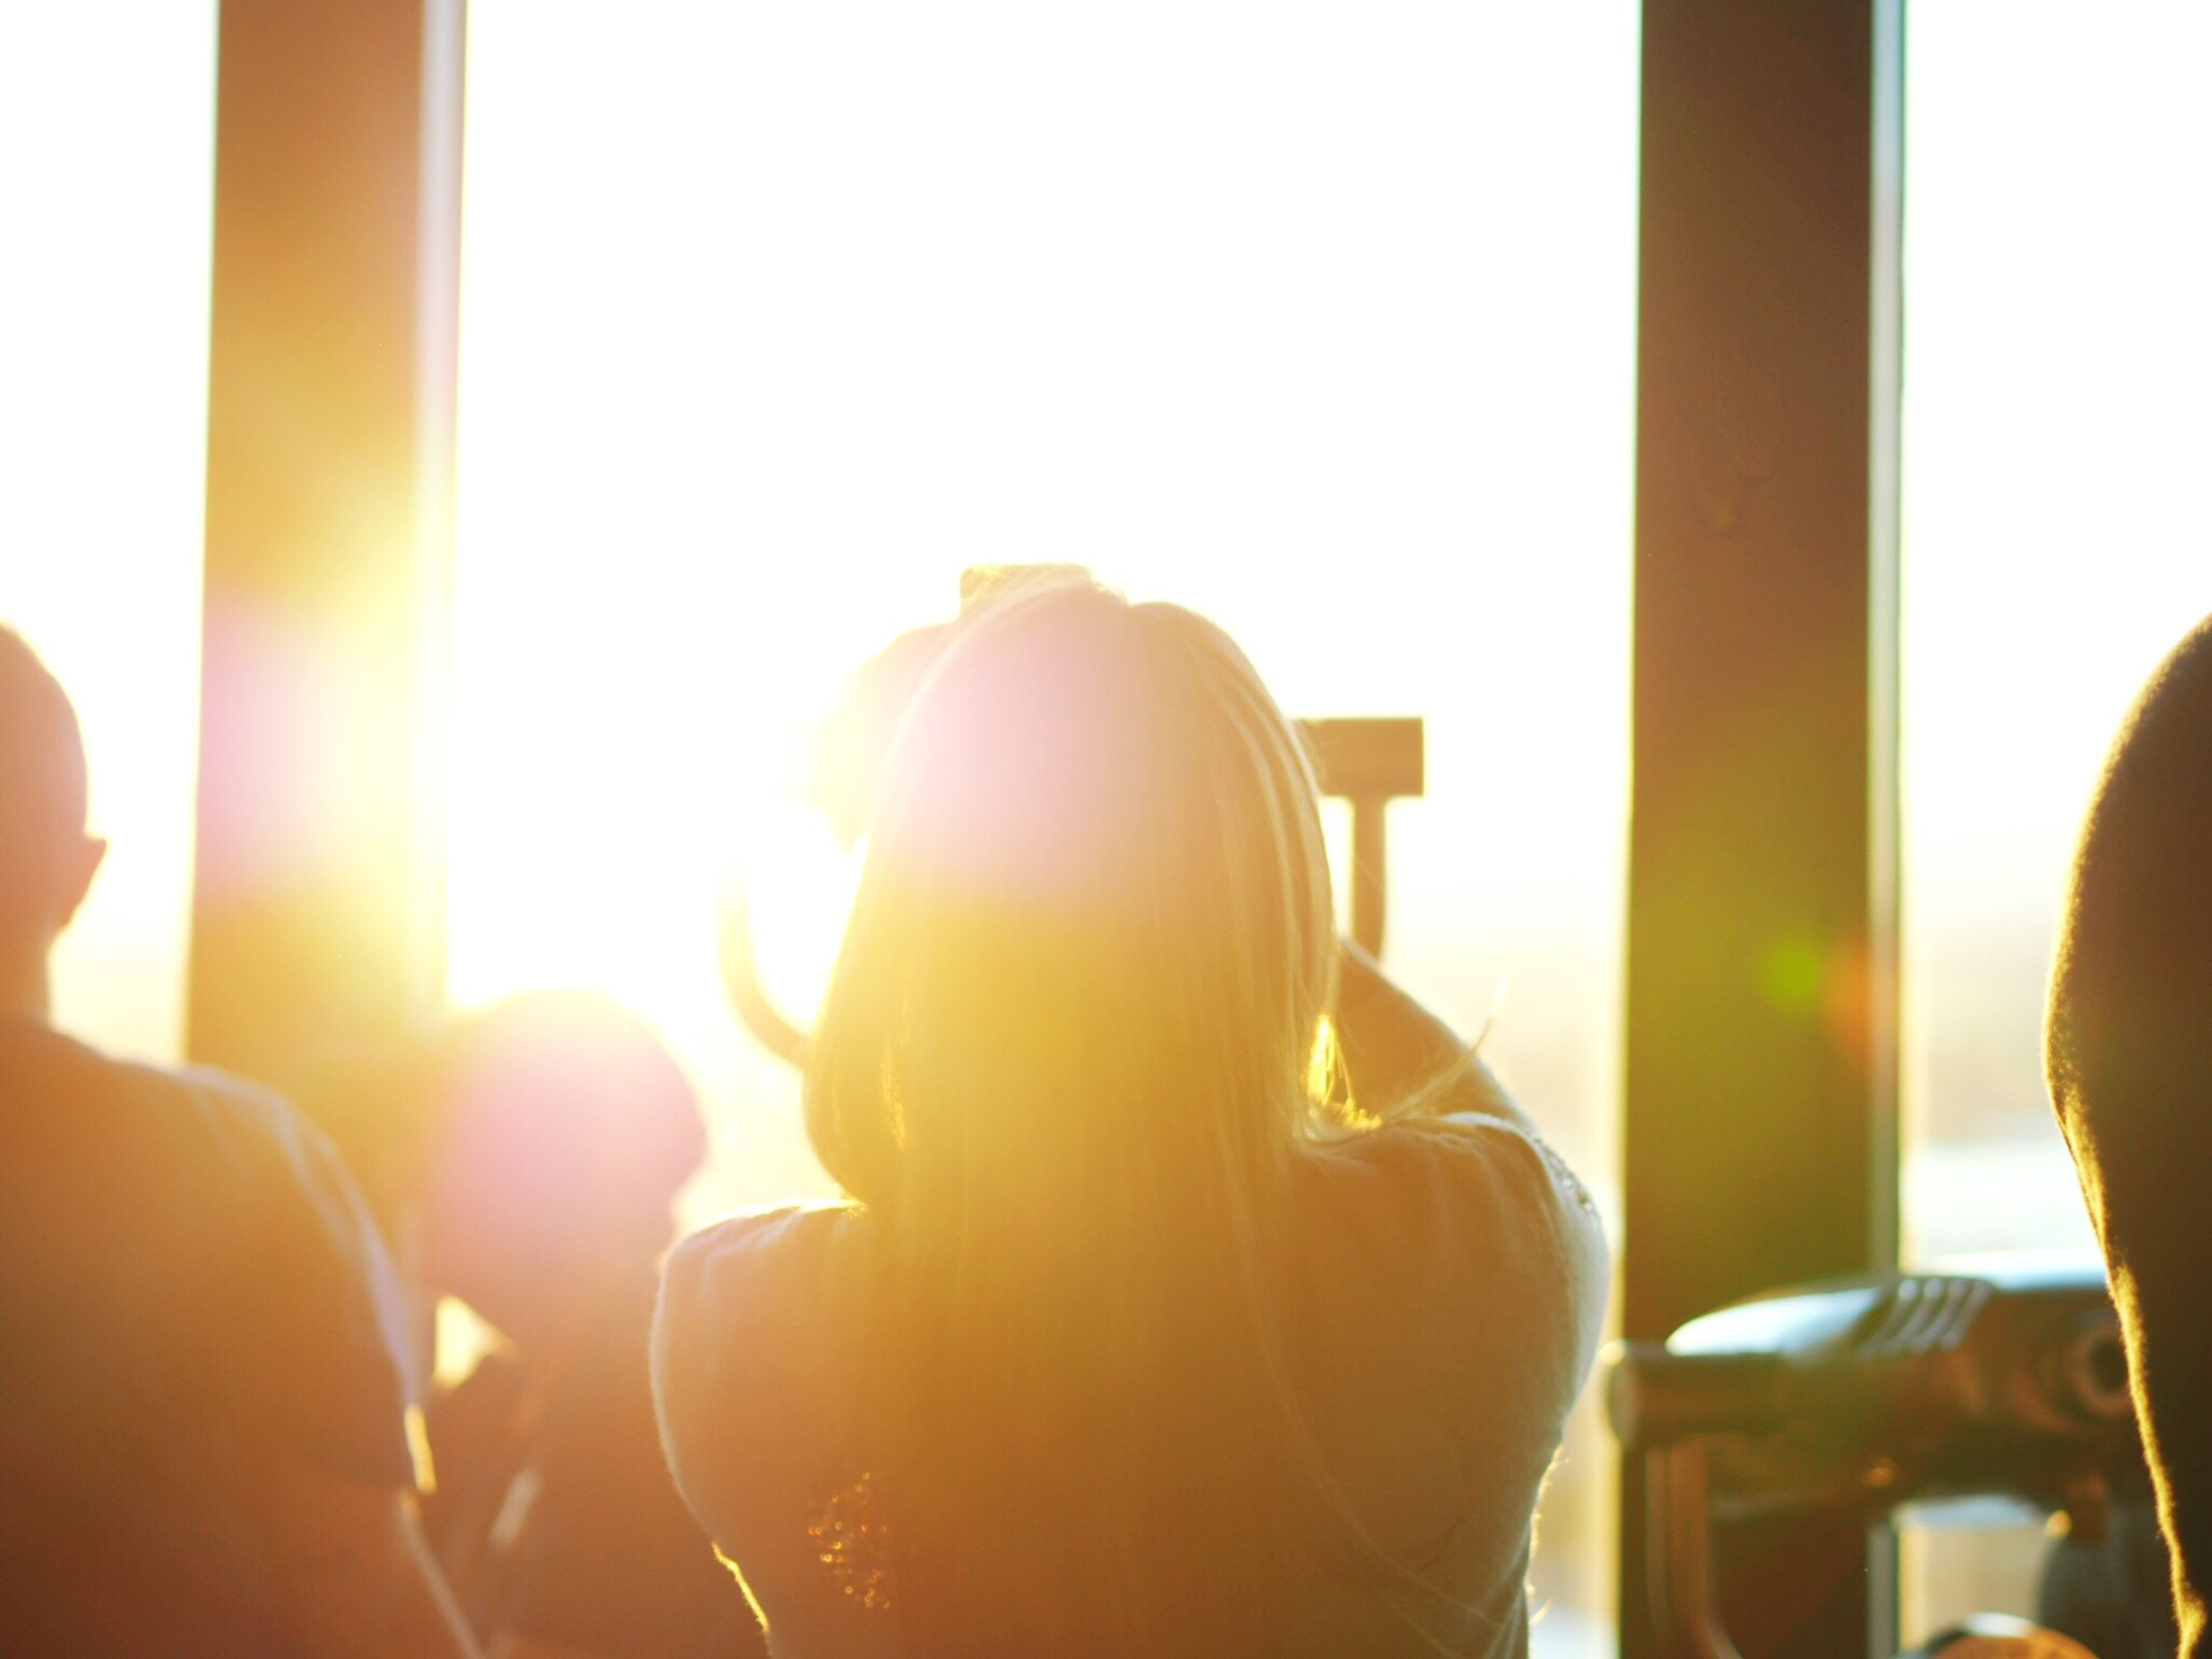 indoors, window, rear view, headshot, close-up, holding, back lit, person, day, focus on foreground, lens flare